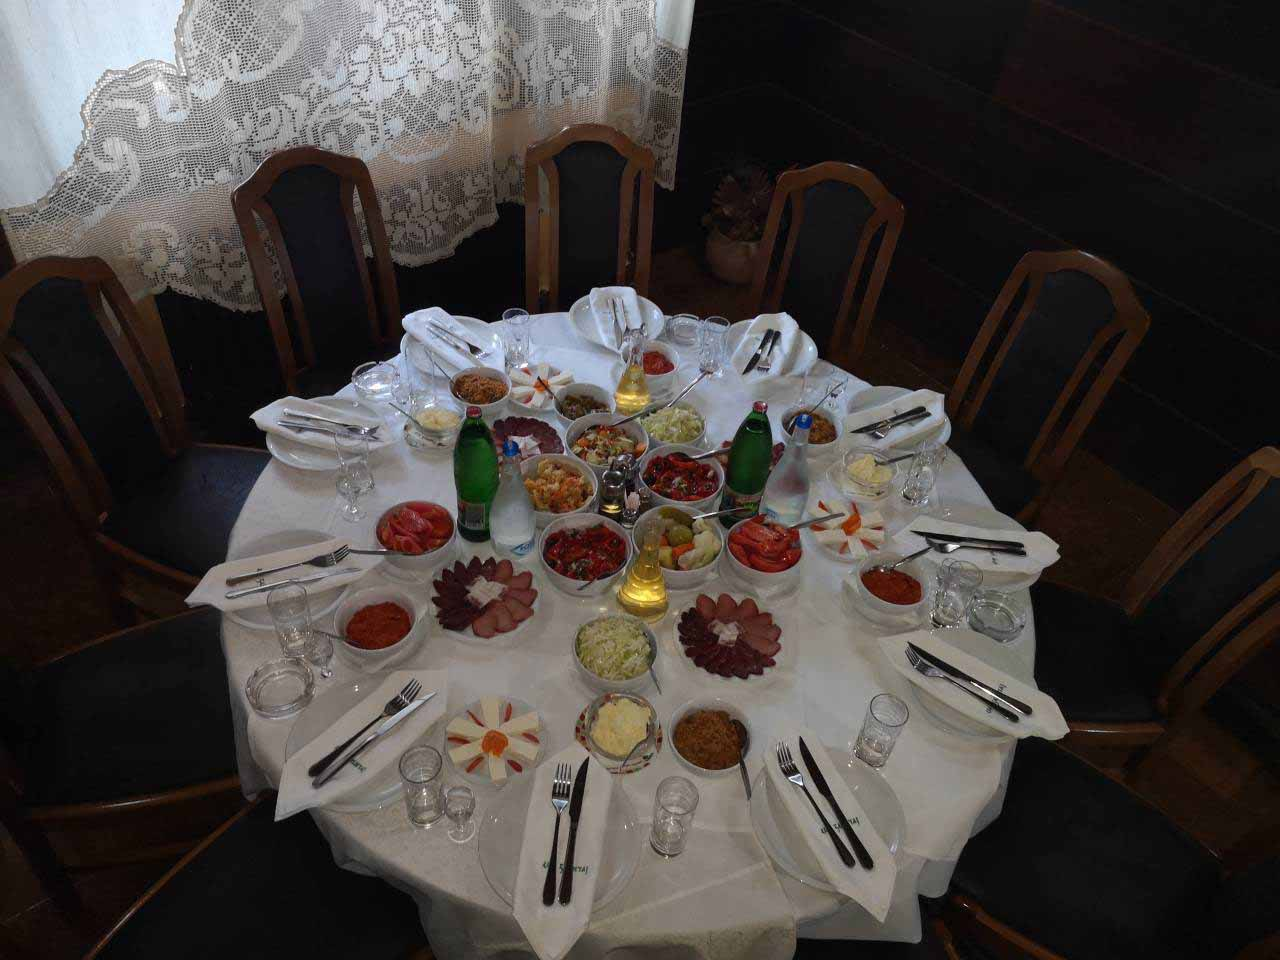 SUR MOJ ZAVICAJ Restaurants for weddings Zlatibor - Photo 8